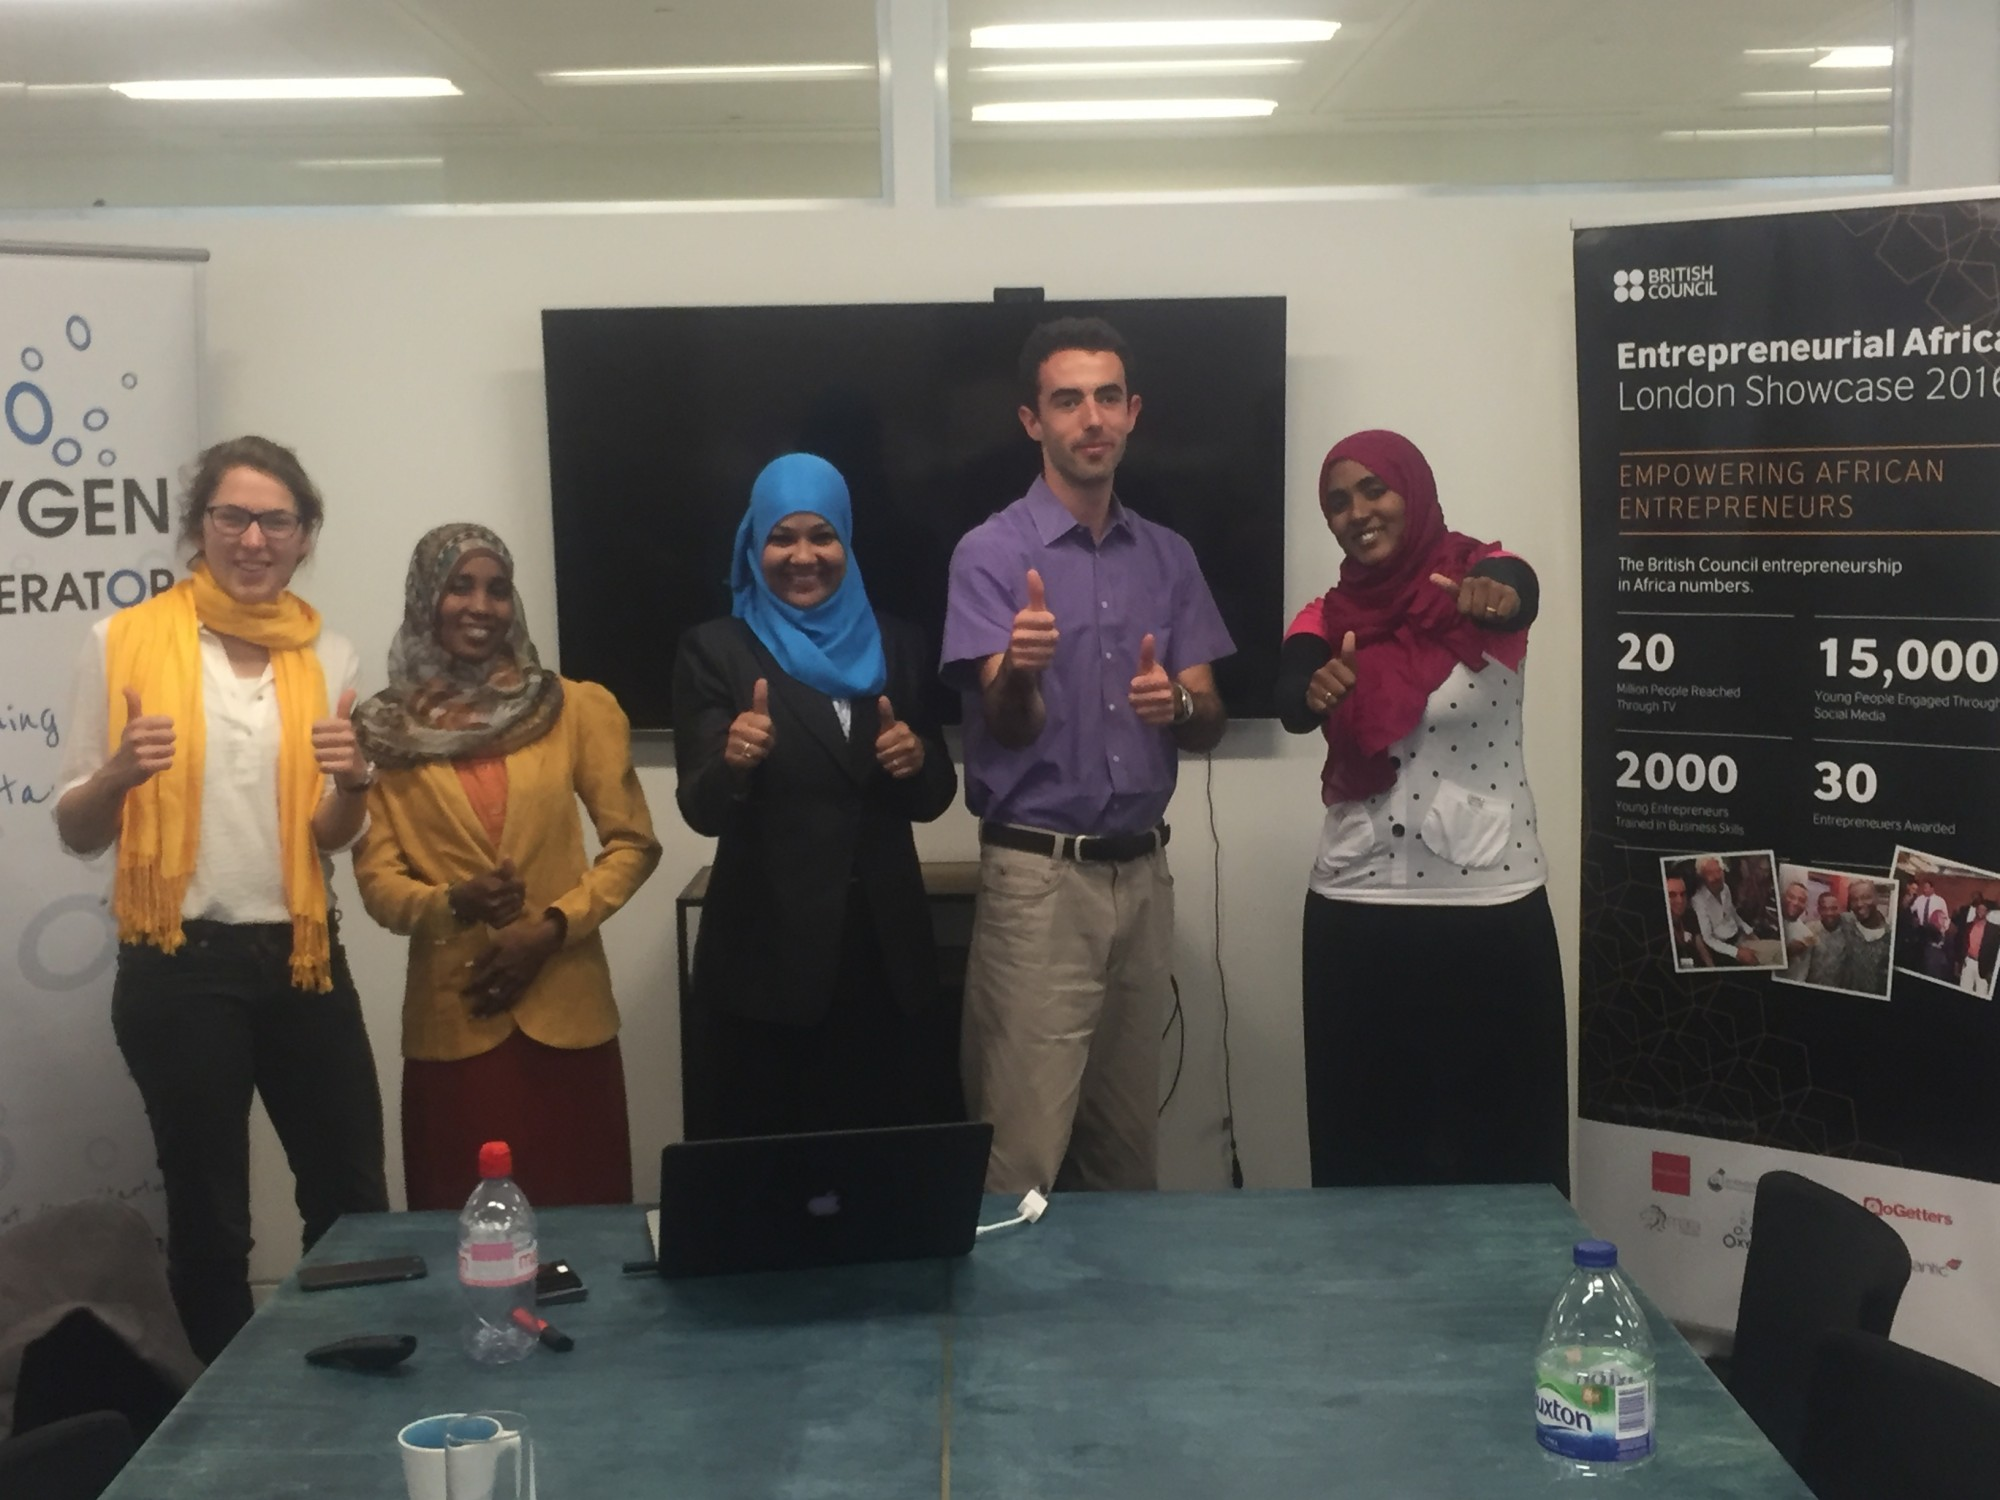 Mashrouy Winners: Houida, Abrar and Maha, after my workshop on tracking business progress and utilising mentors